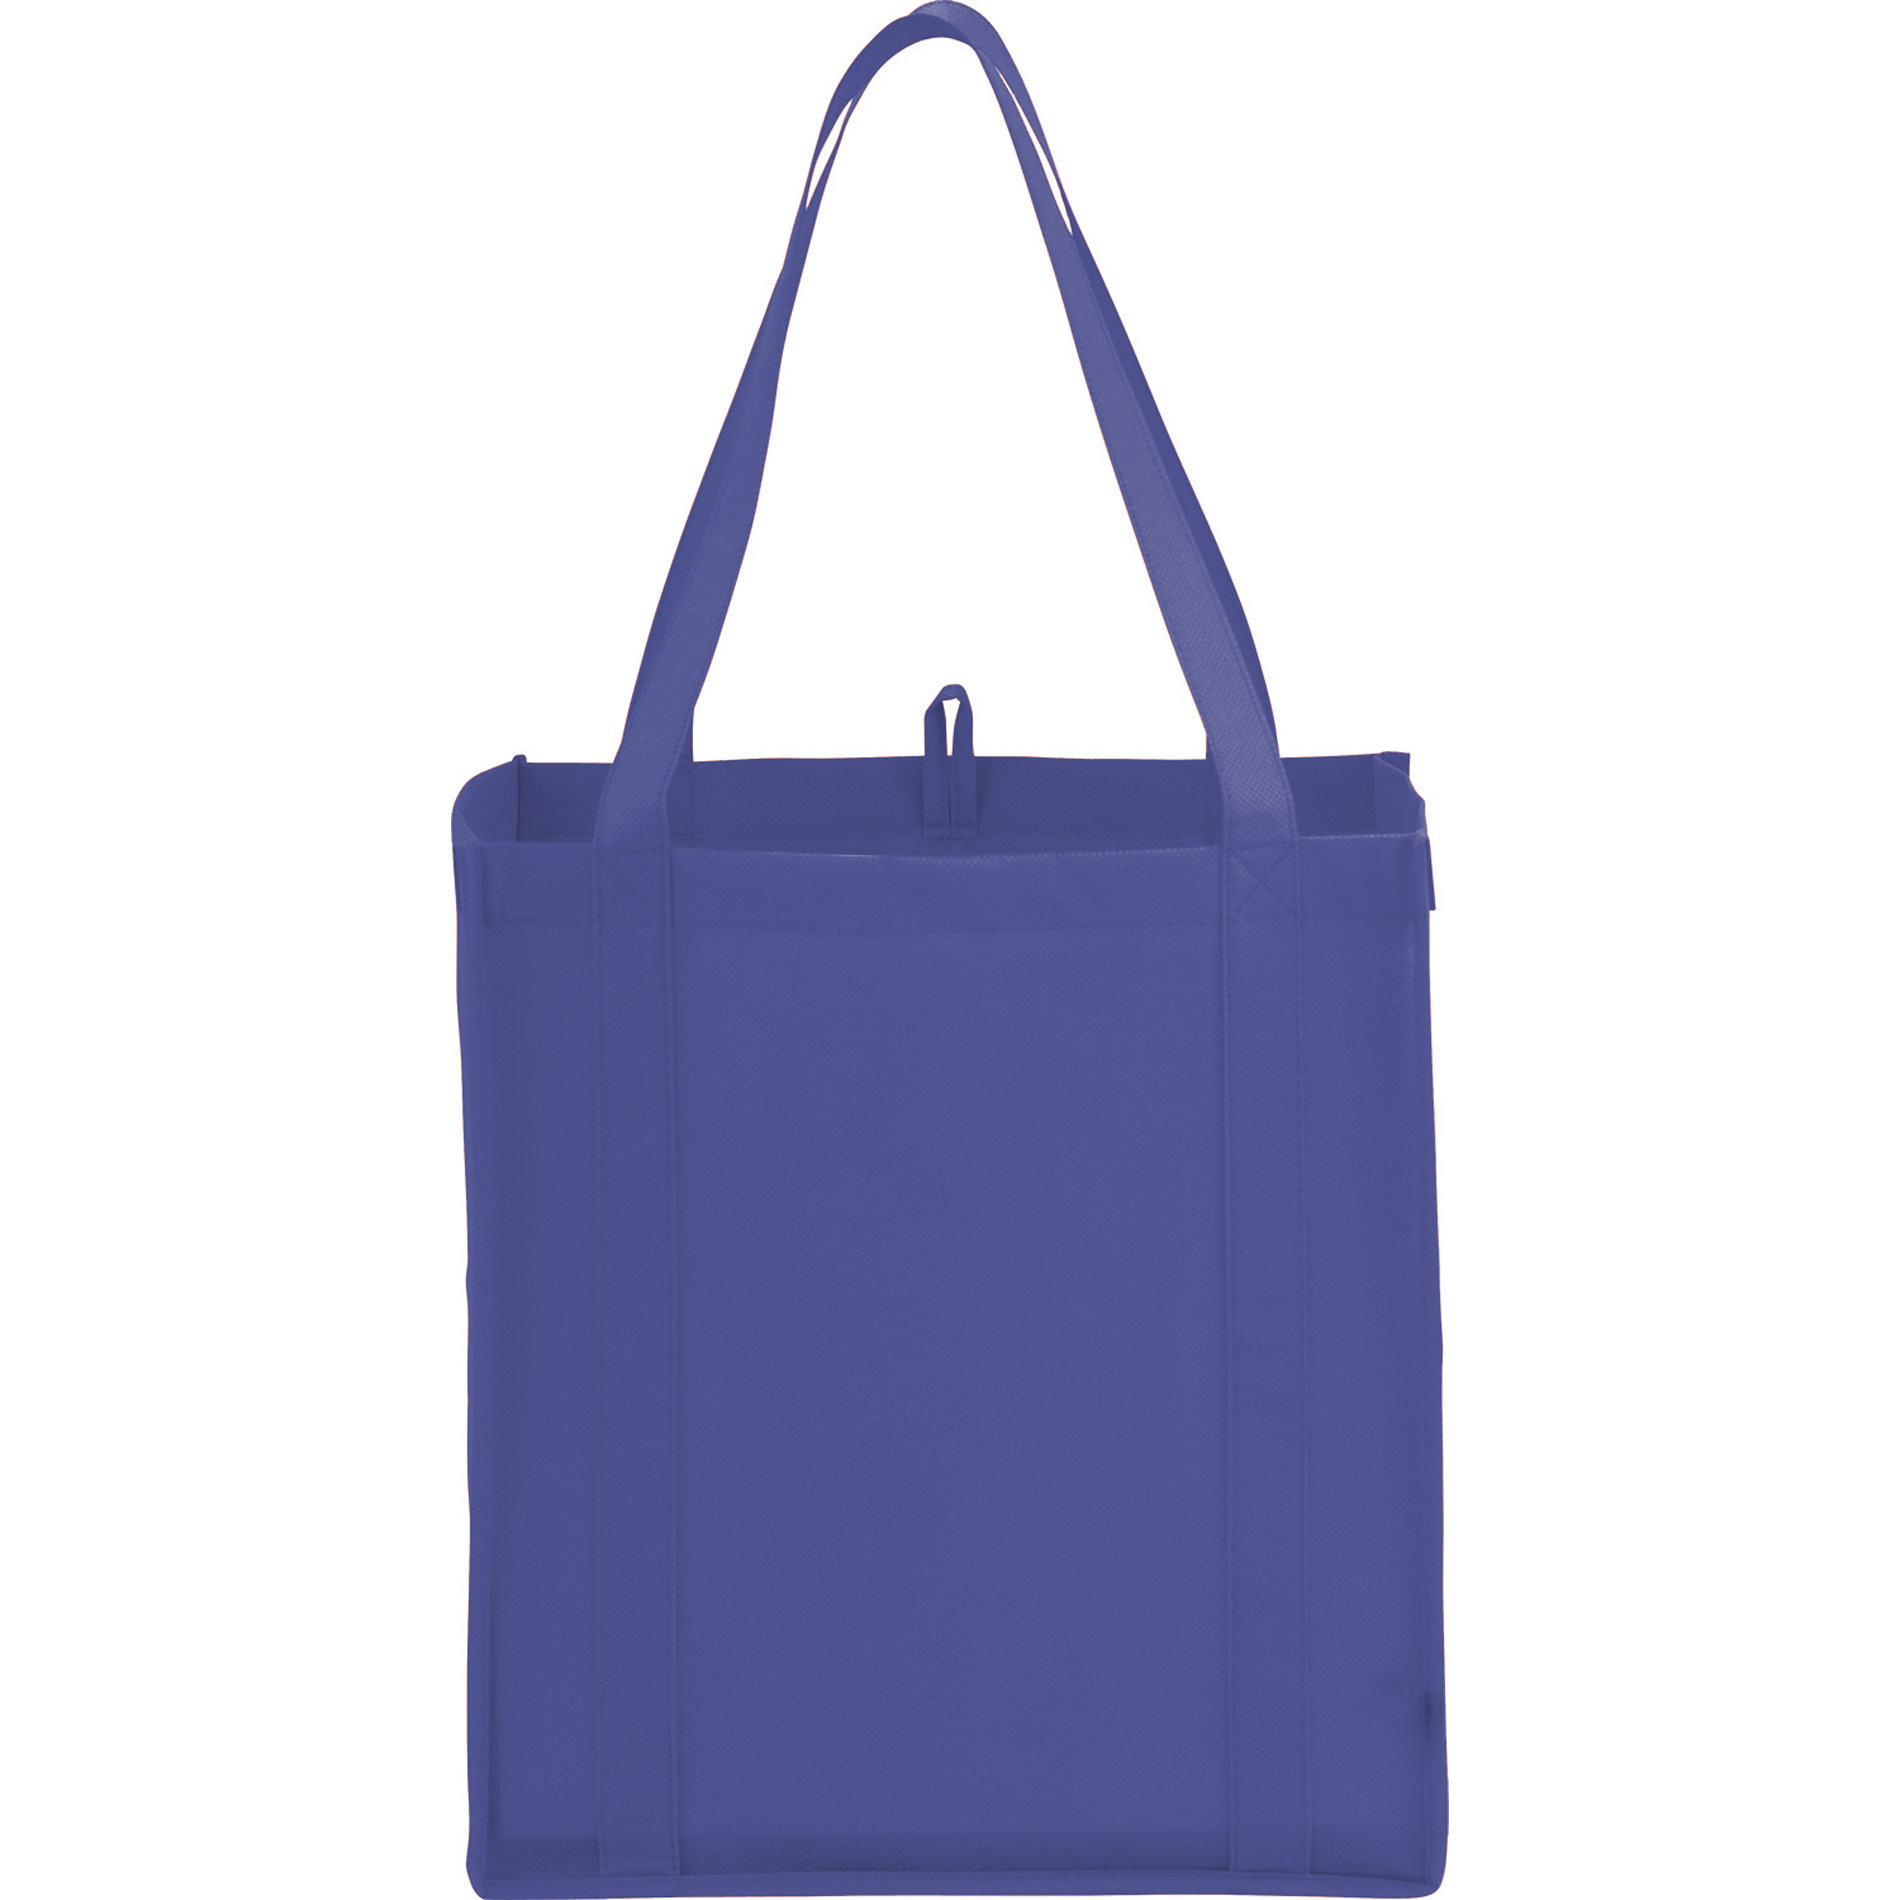 LEEDS 2150-01 - Little Grocery Non-Woven Tote